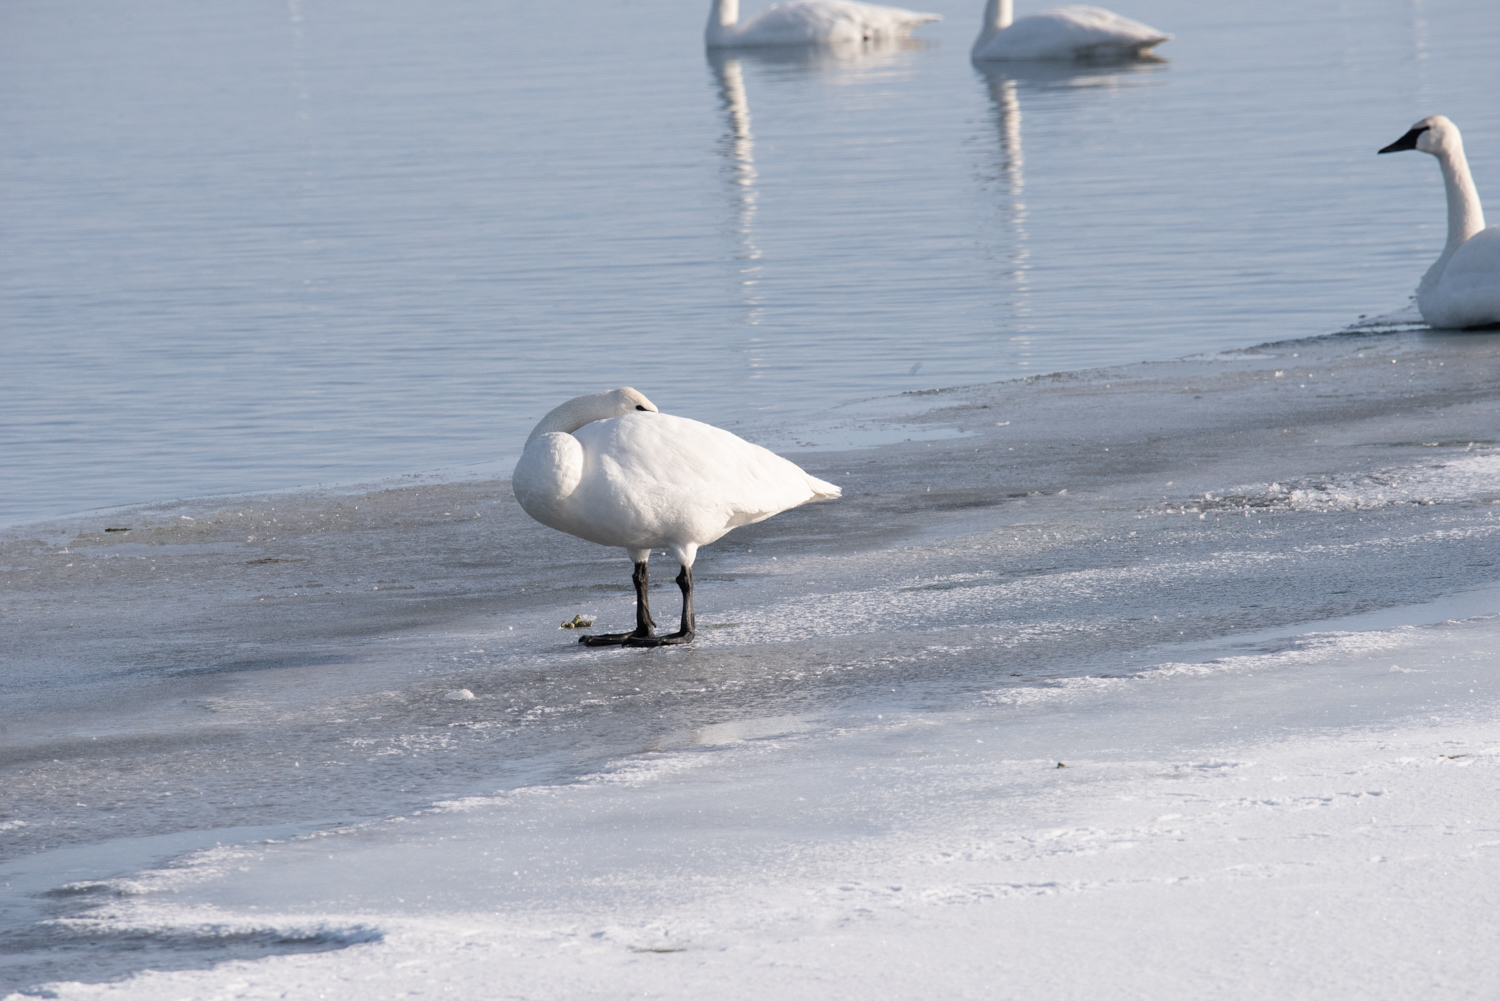 Image: This image of a Trumpeter Swan was captured at 600mm. I was able to isolate it from the group...